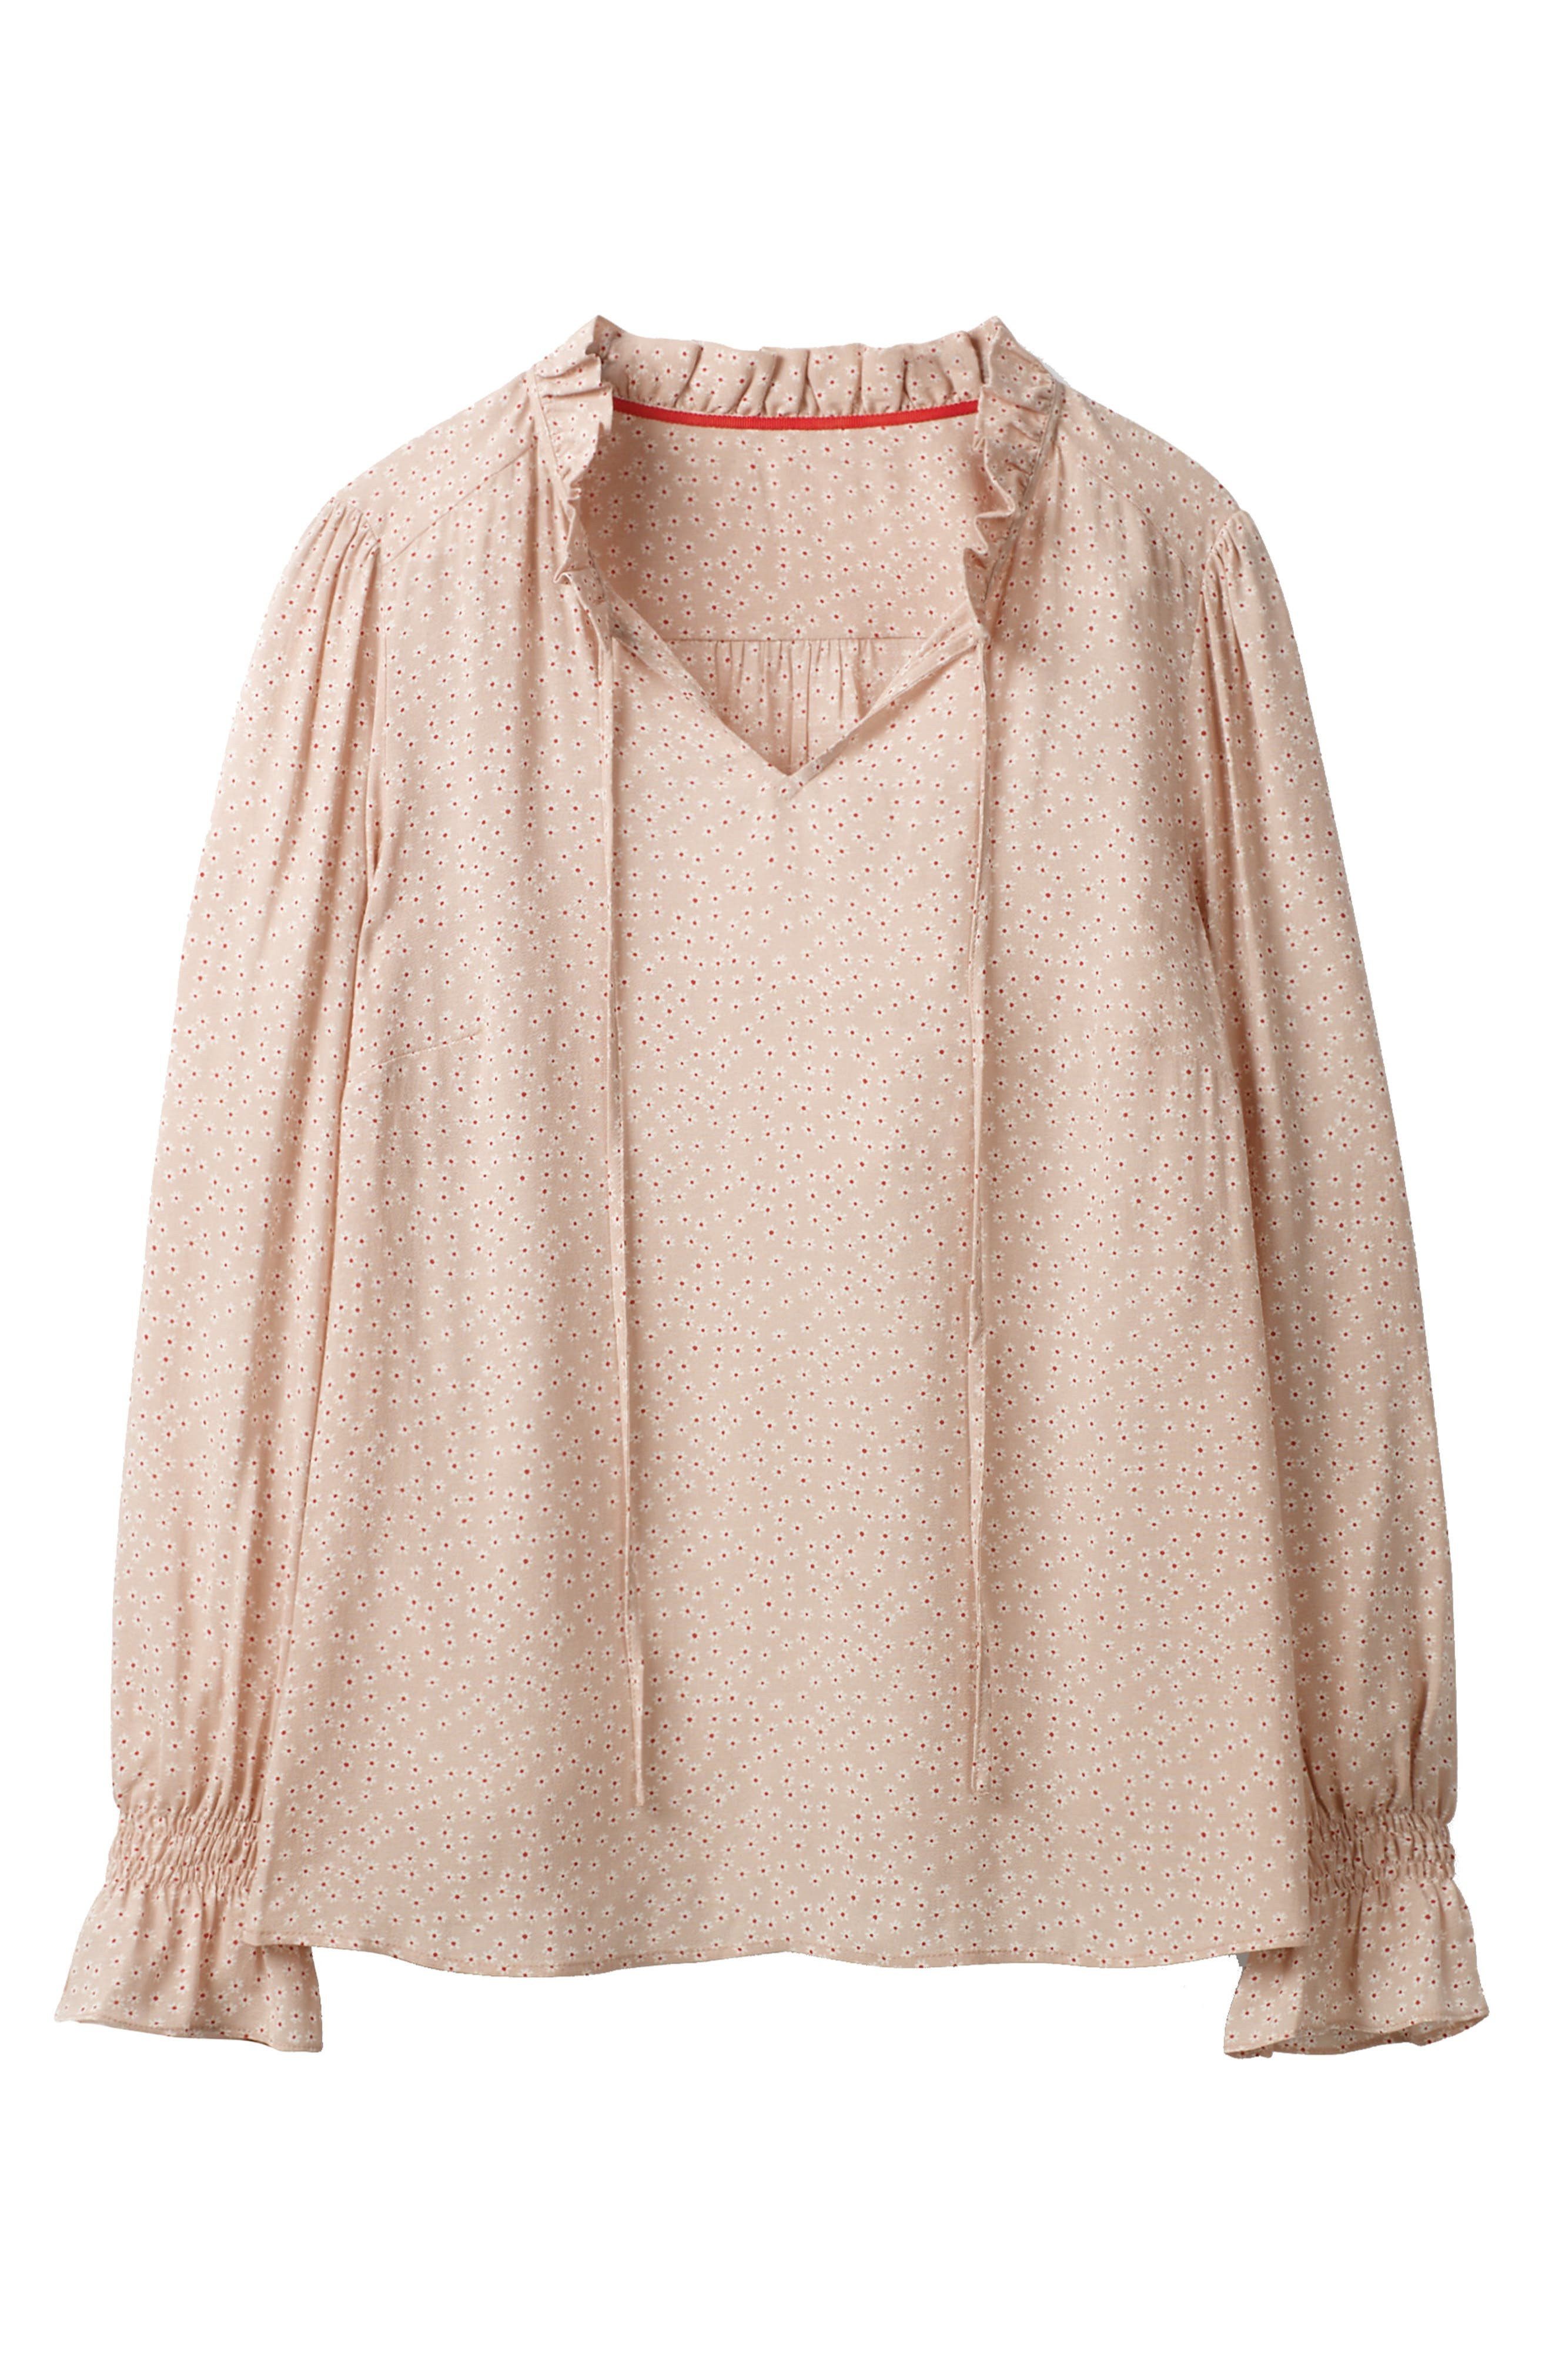 Hotch Potch Ruffled Top,                             Alternate thumbnail 6, color,                             Pink Pearl/ Daisy Sm